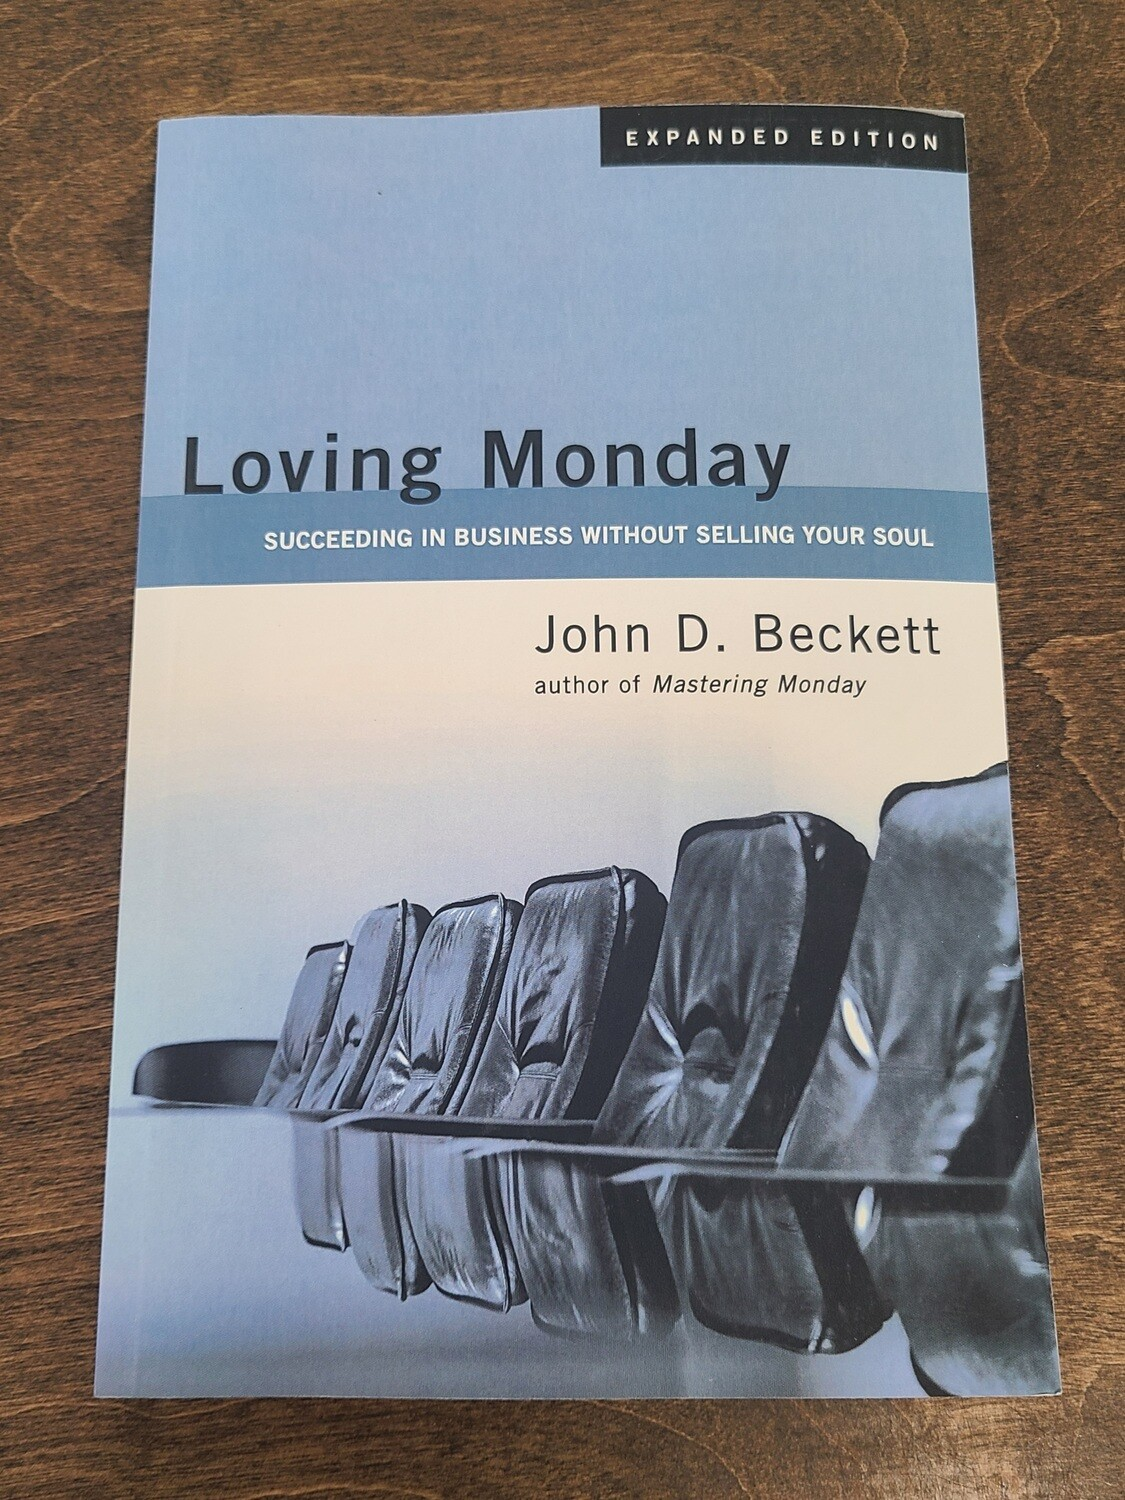 Loving Monday: Succeeding in Business Without Selling Your Soul by John D. Beckett